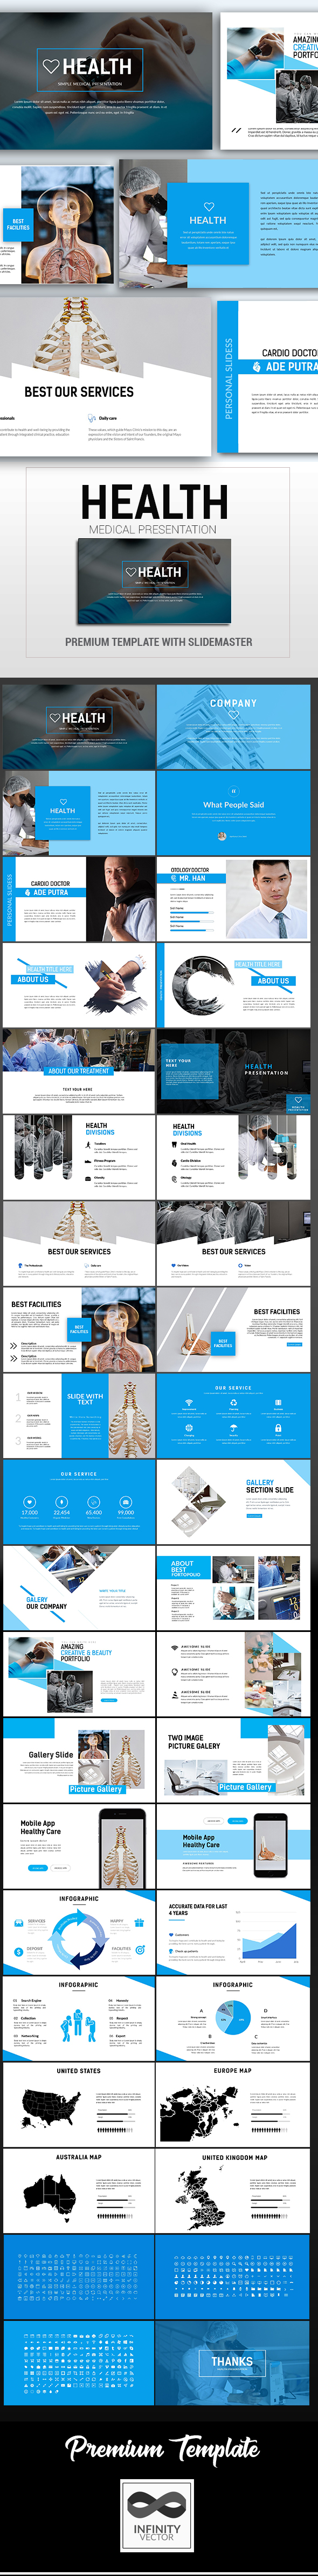 GraphicRiver Health Simple Medical Presentation 21126456